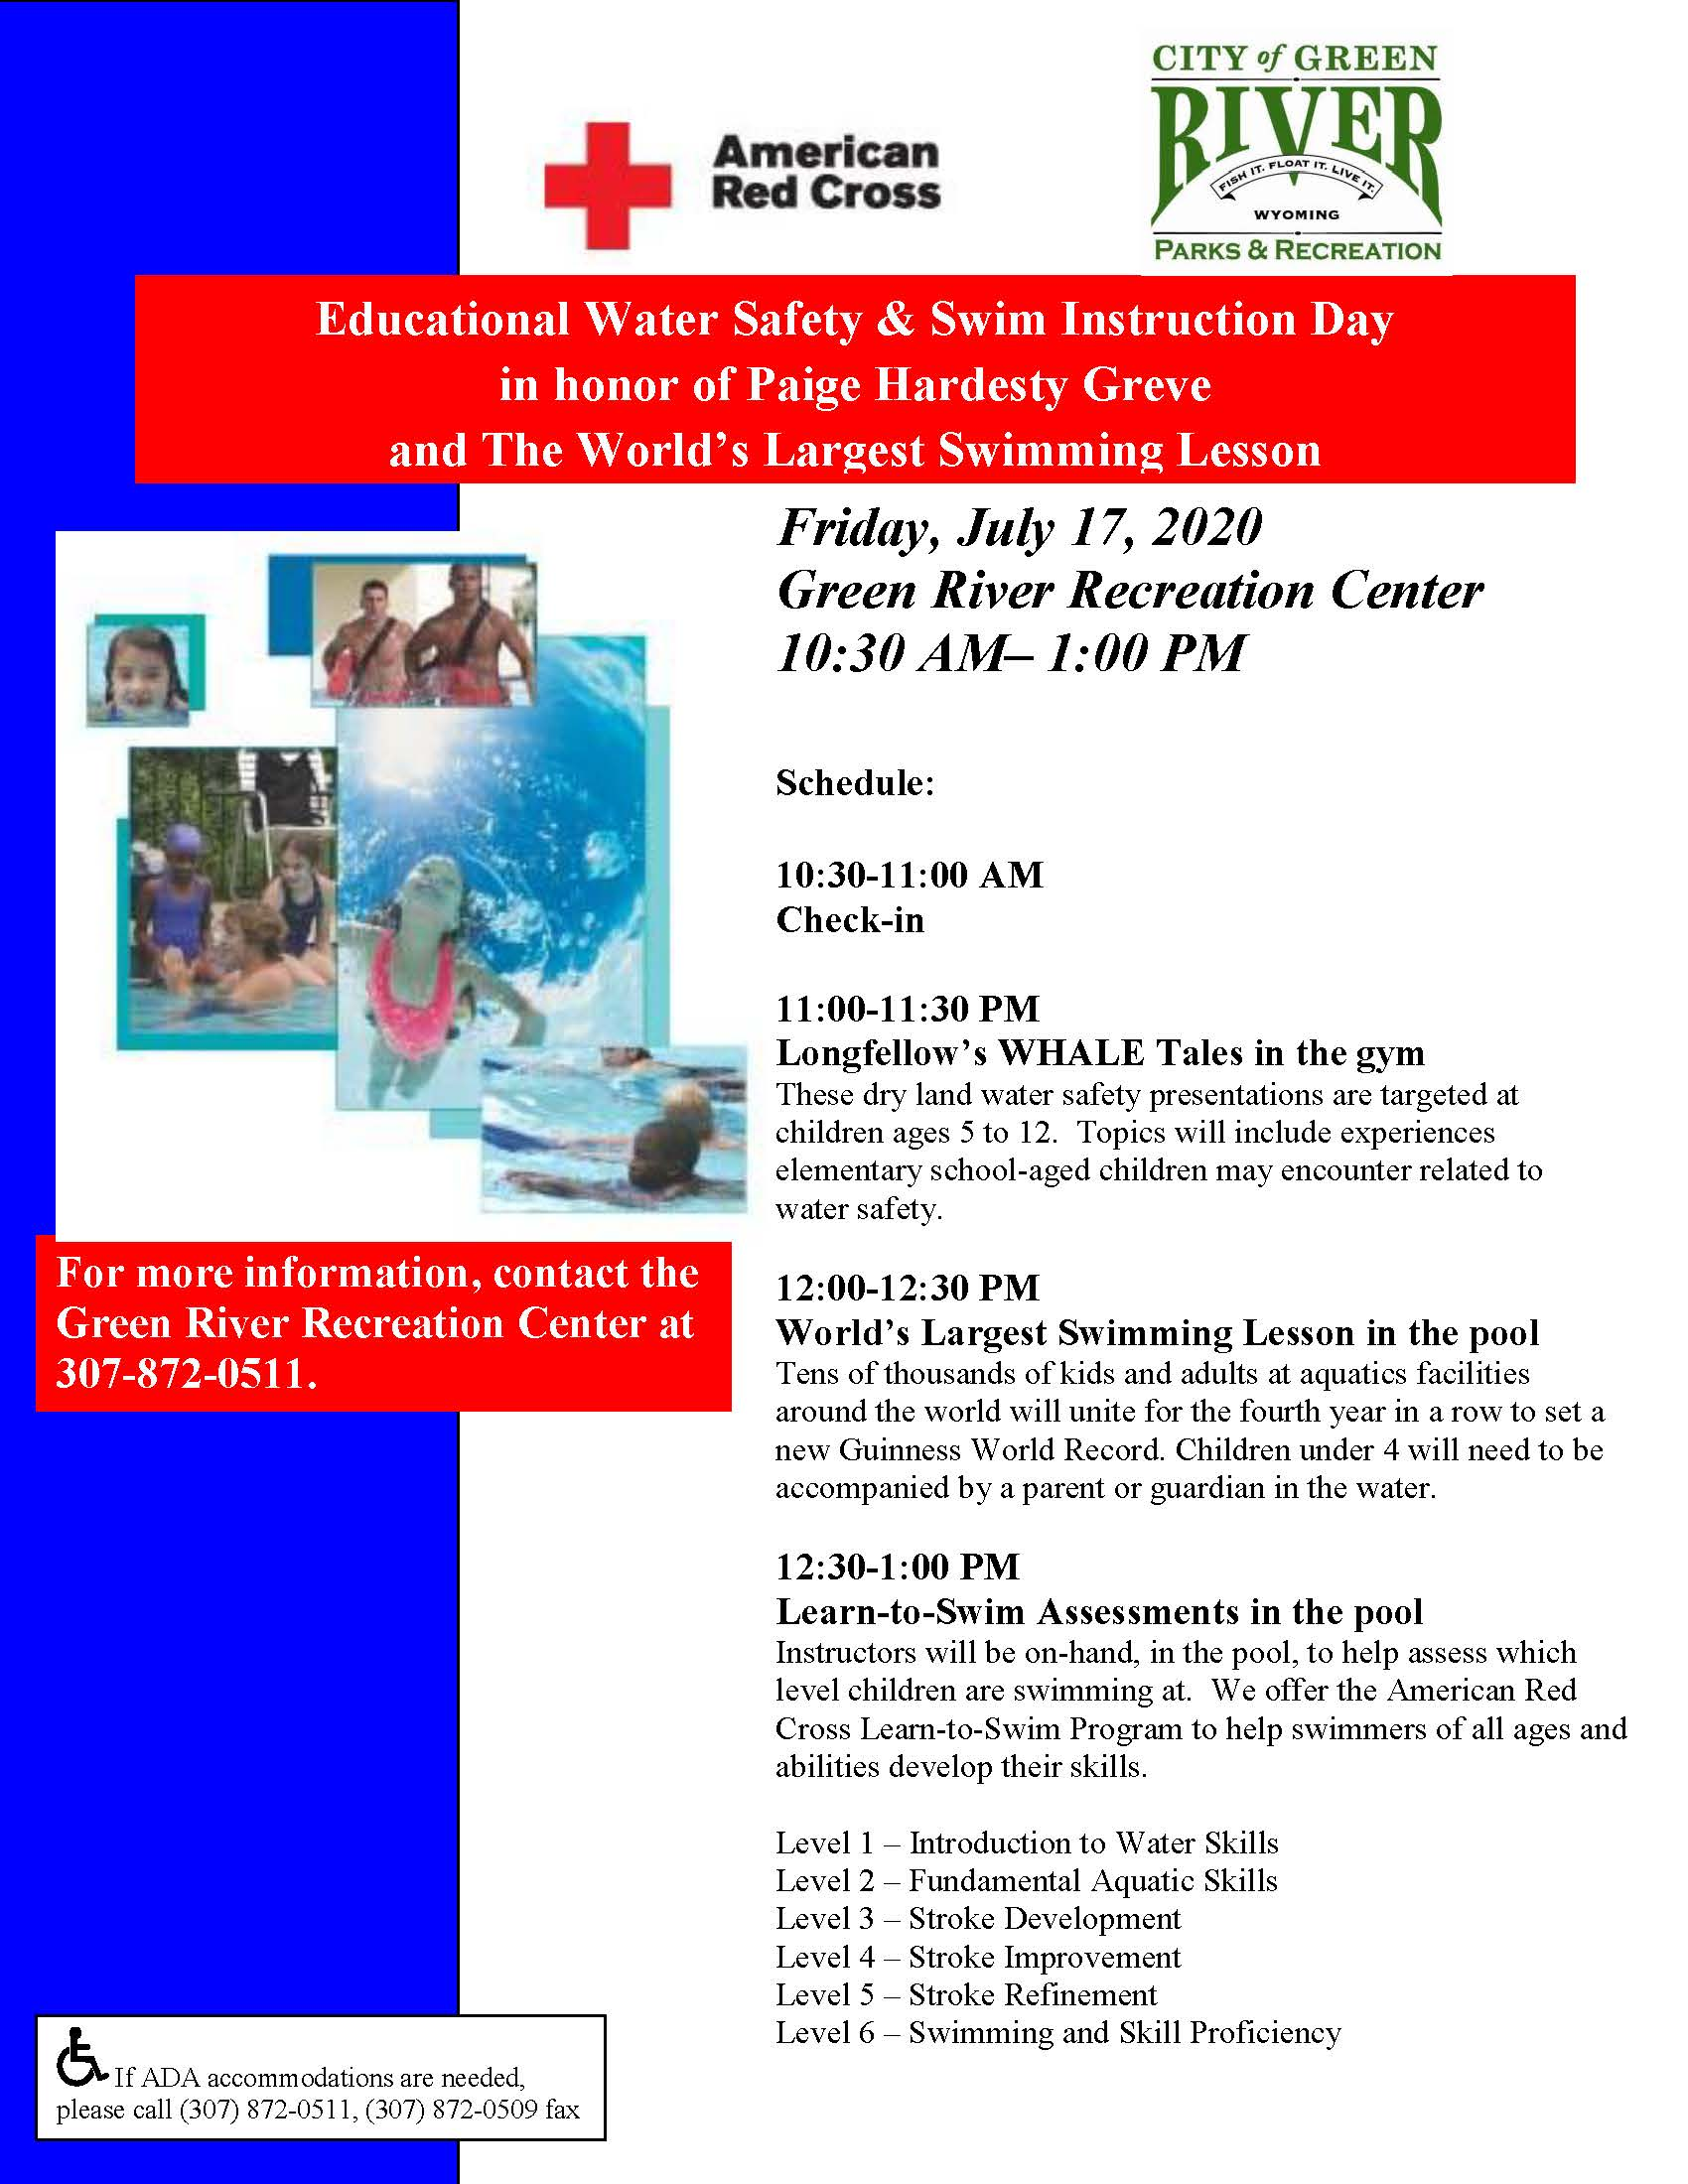 Water Safety Day.Largest Swim Lesson flier 7.17.2020